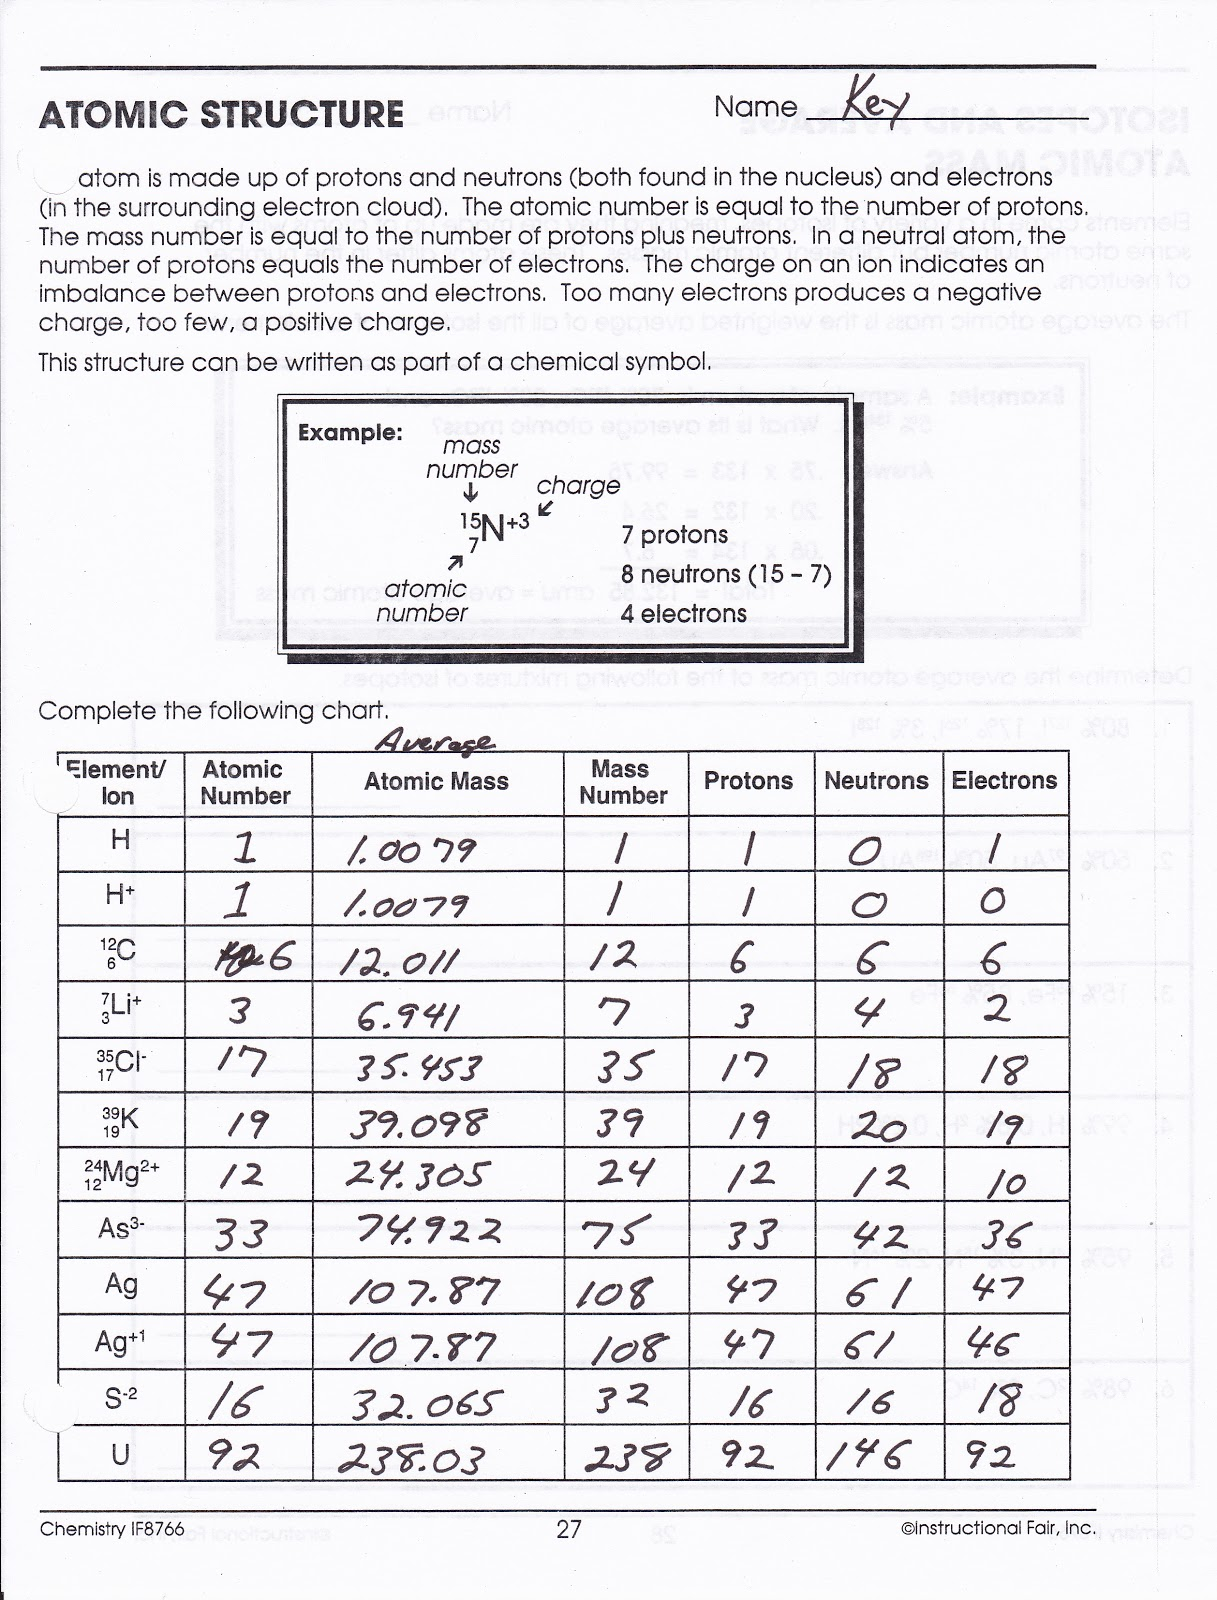 Worksheets Atomic Structure Worksheet atomic structure worksheet images reverse search filename struct ws jpg